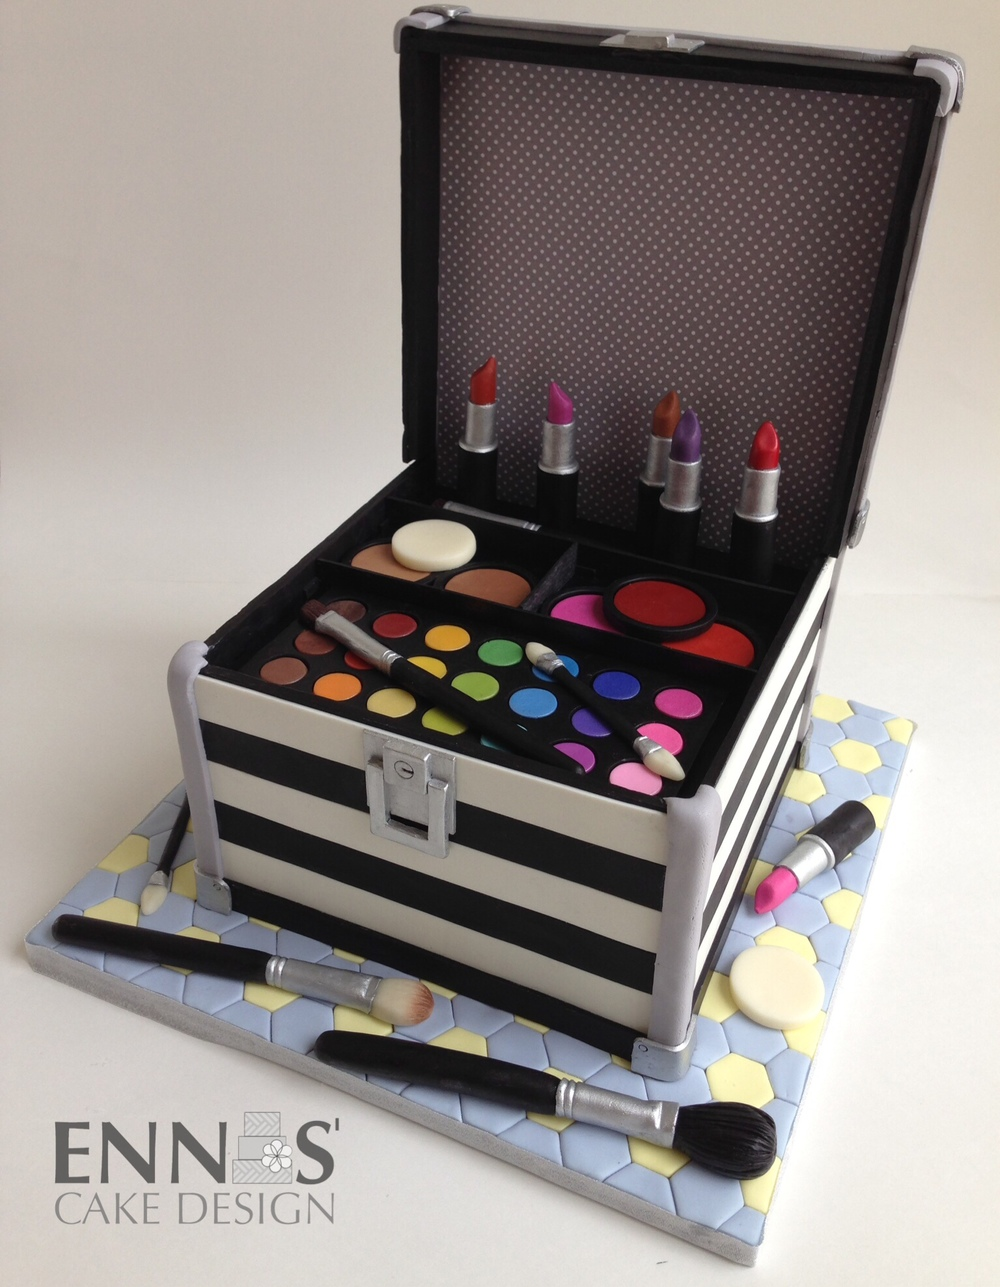 Makeup Kit Cake Design : Sculpted Cakes   Ennas  Cake Design